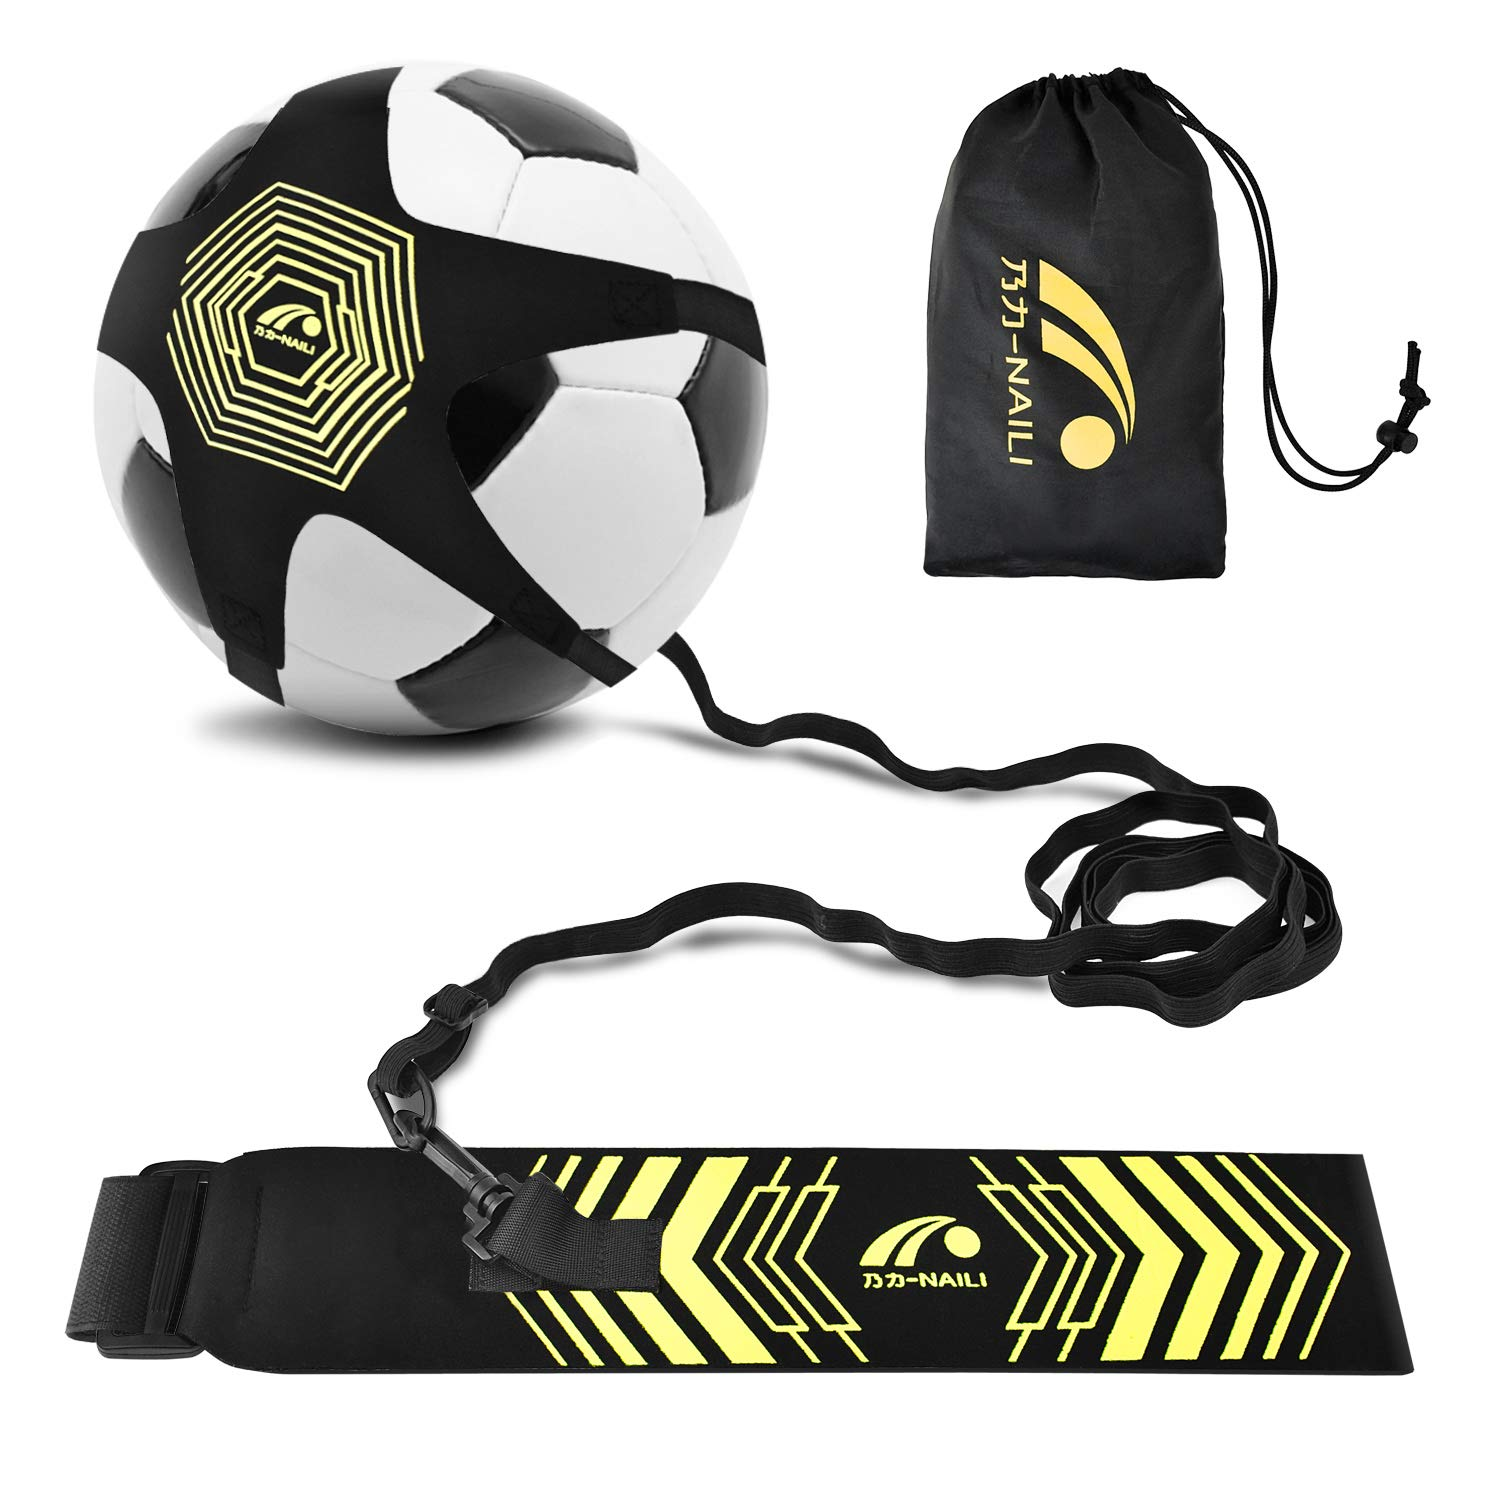 BROTOU Fútbol Trainer, Football Trainer Banda,Football Kick ...